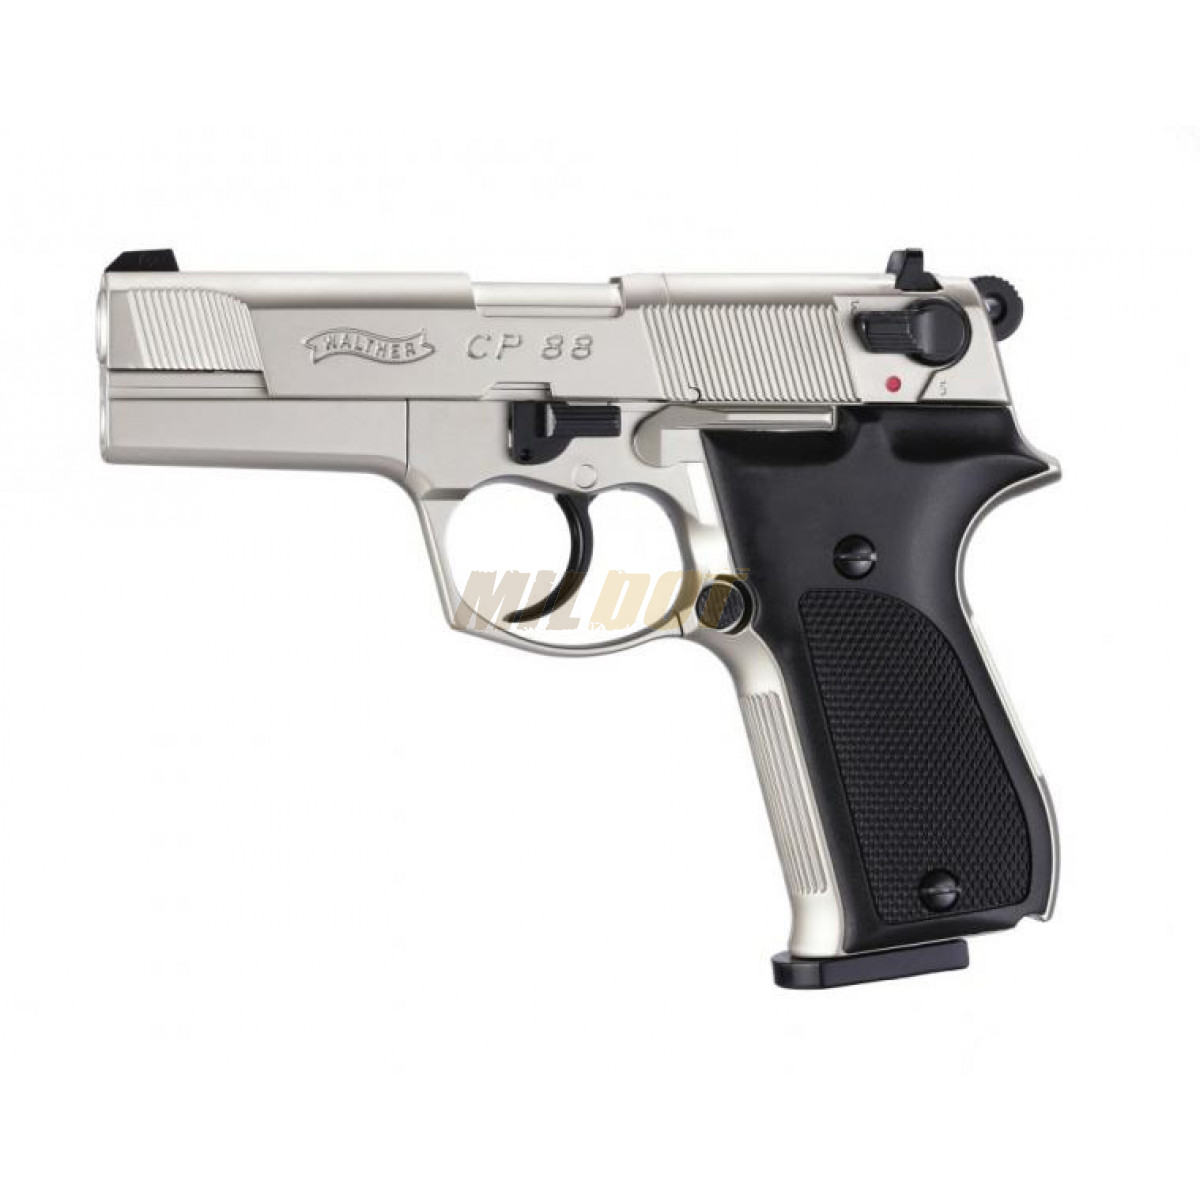 pistola walther cp88 nickel co2 4 5mm rh mildot es Walther CP88 Blued 6 Inch Walther CP88 Parts